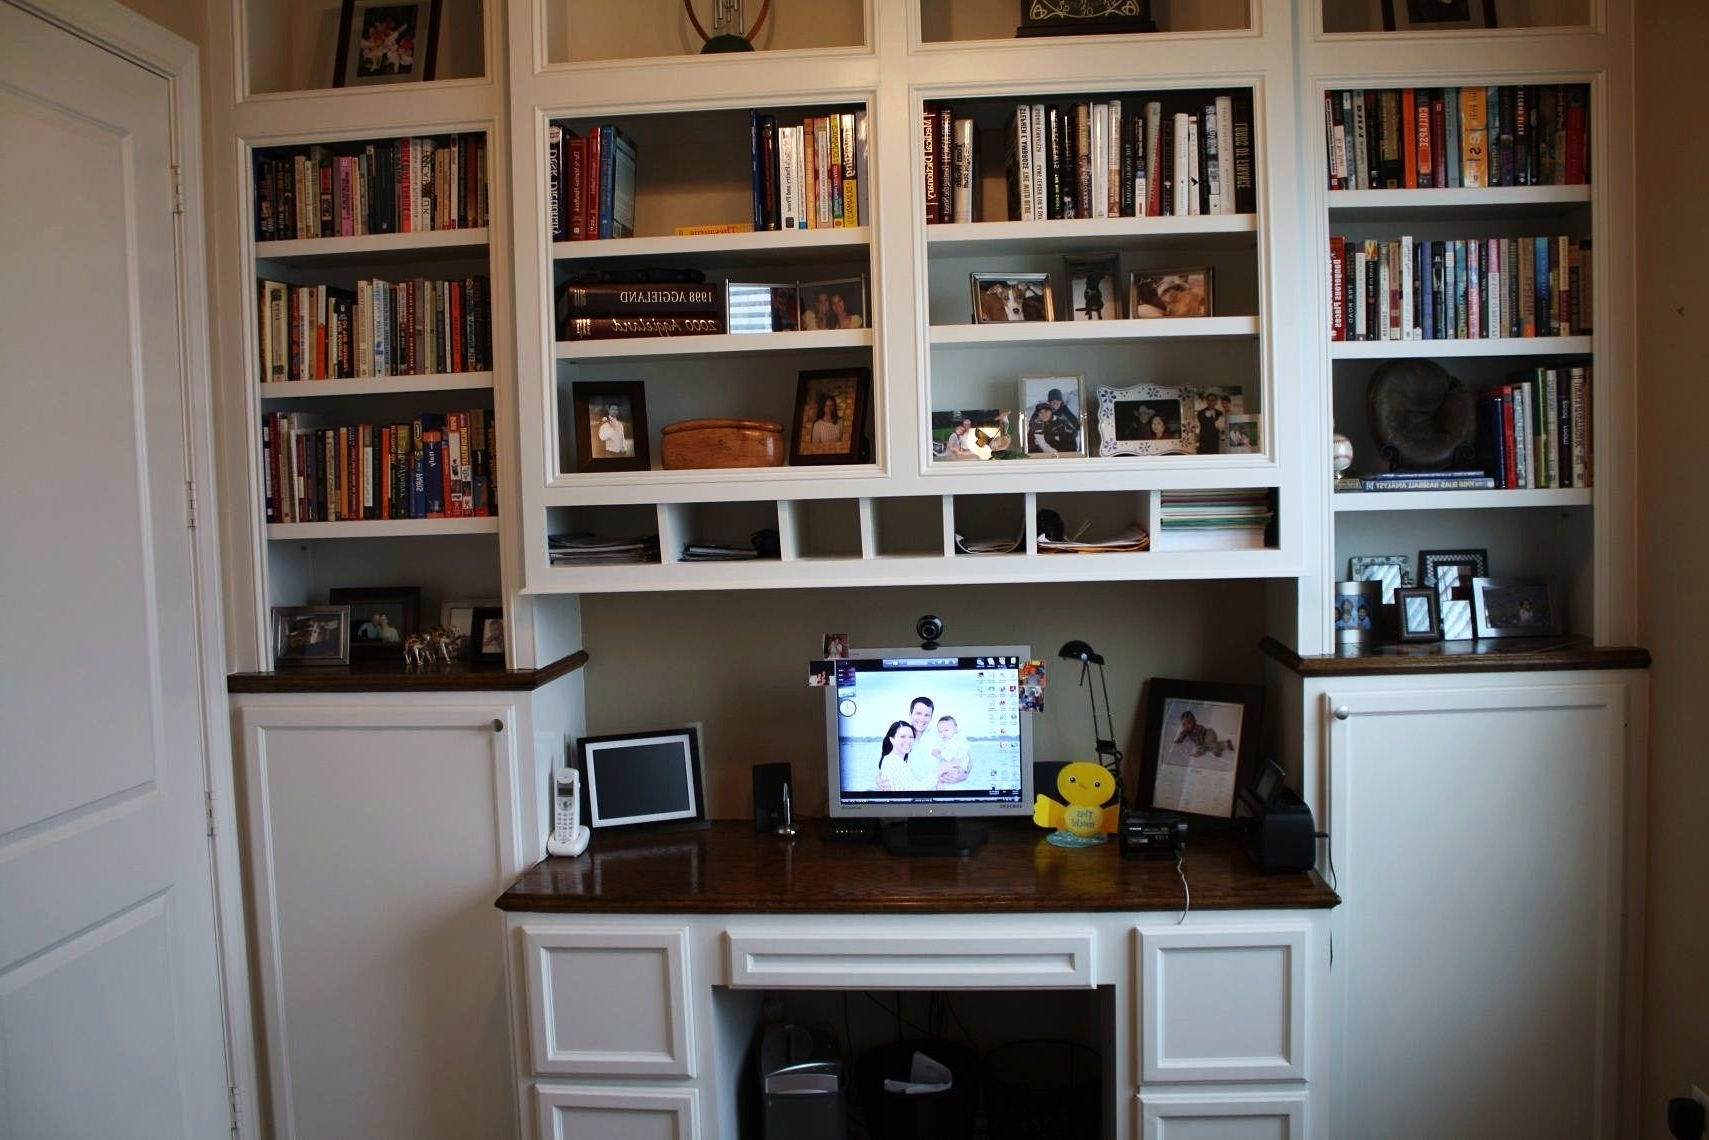 Custom Made Built In Desk & Bookcasescustom Cabinets & Trim With Widely Used Desk With Matching Bookcases (View 3 of 15)